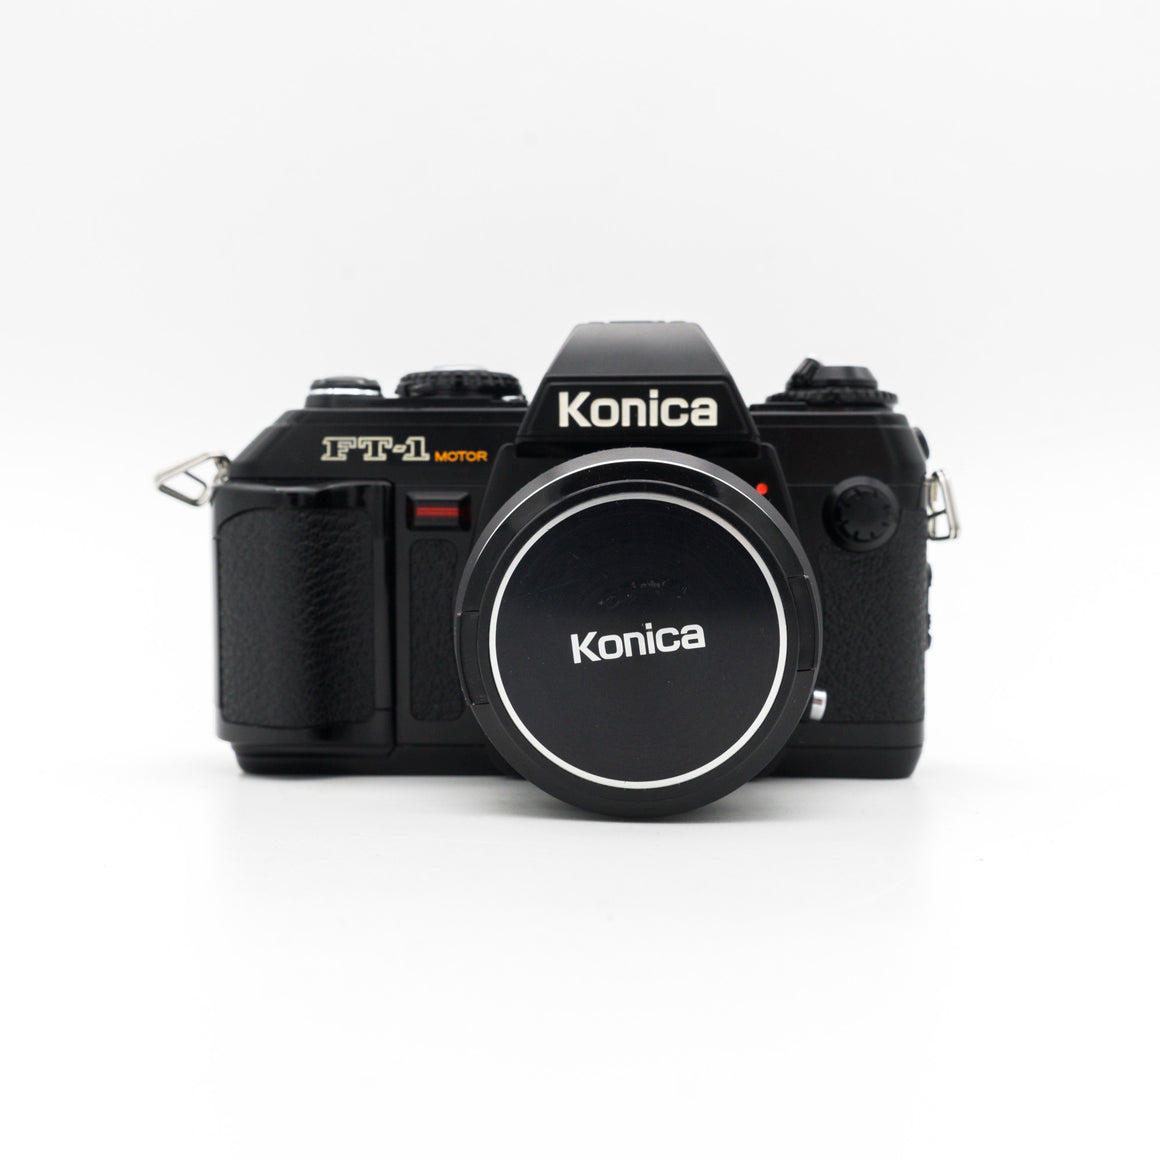 Konica FT-1 35mm SLR camera with 50mm f1.4 lens